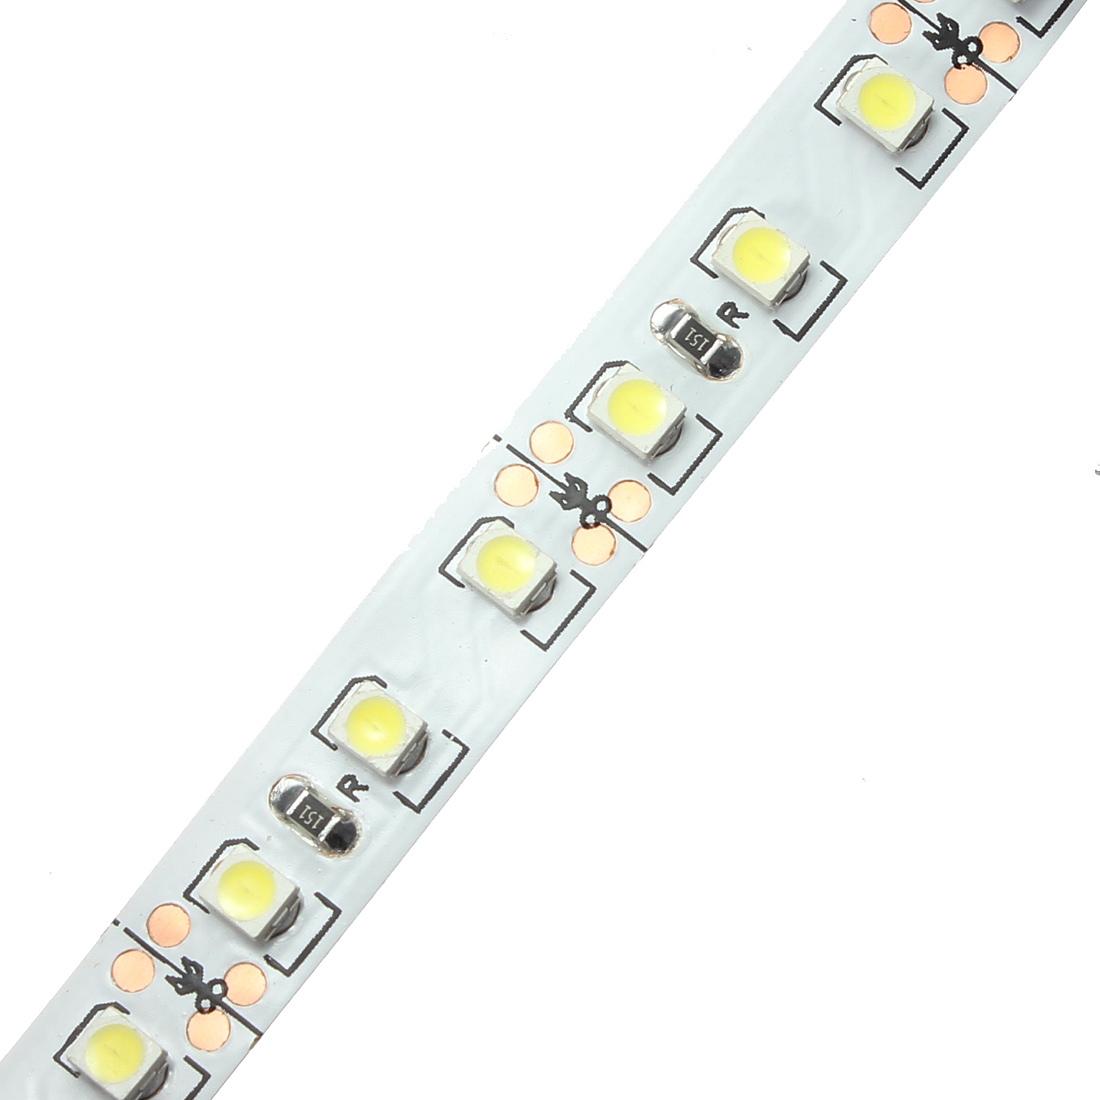 5m 3528 smd 600 led strip. Black Bedroom Furniture Sets. Home Design Ideas